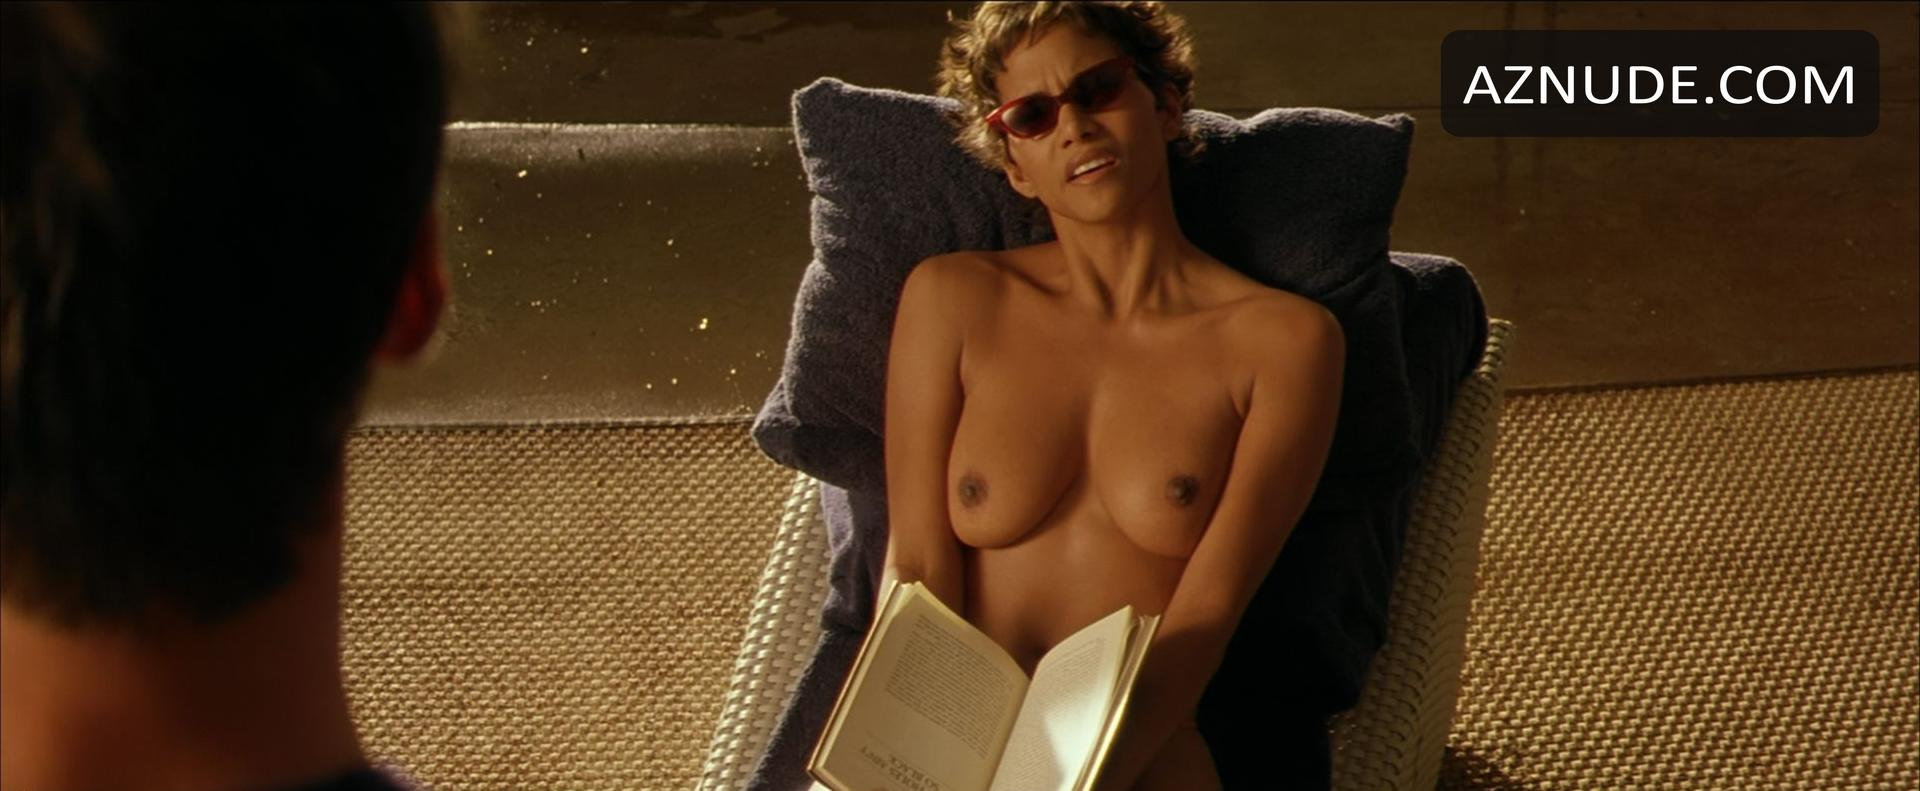 Halle berry swordfish sex scene